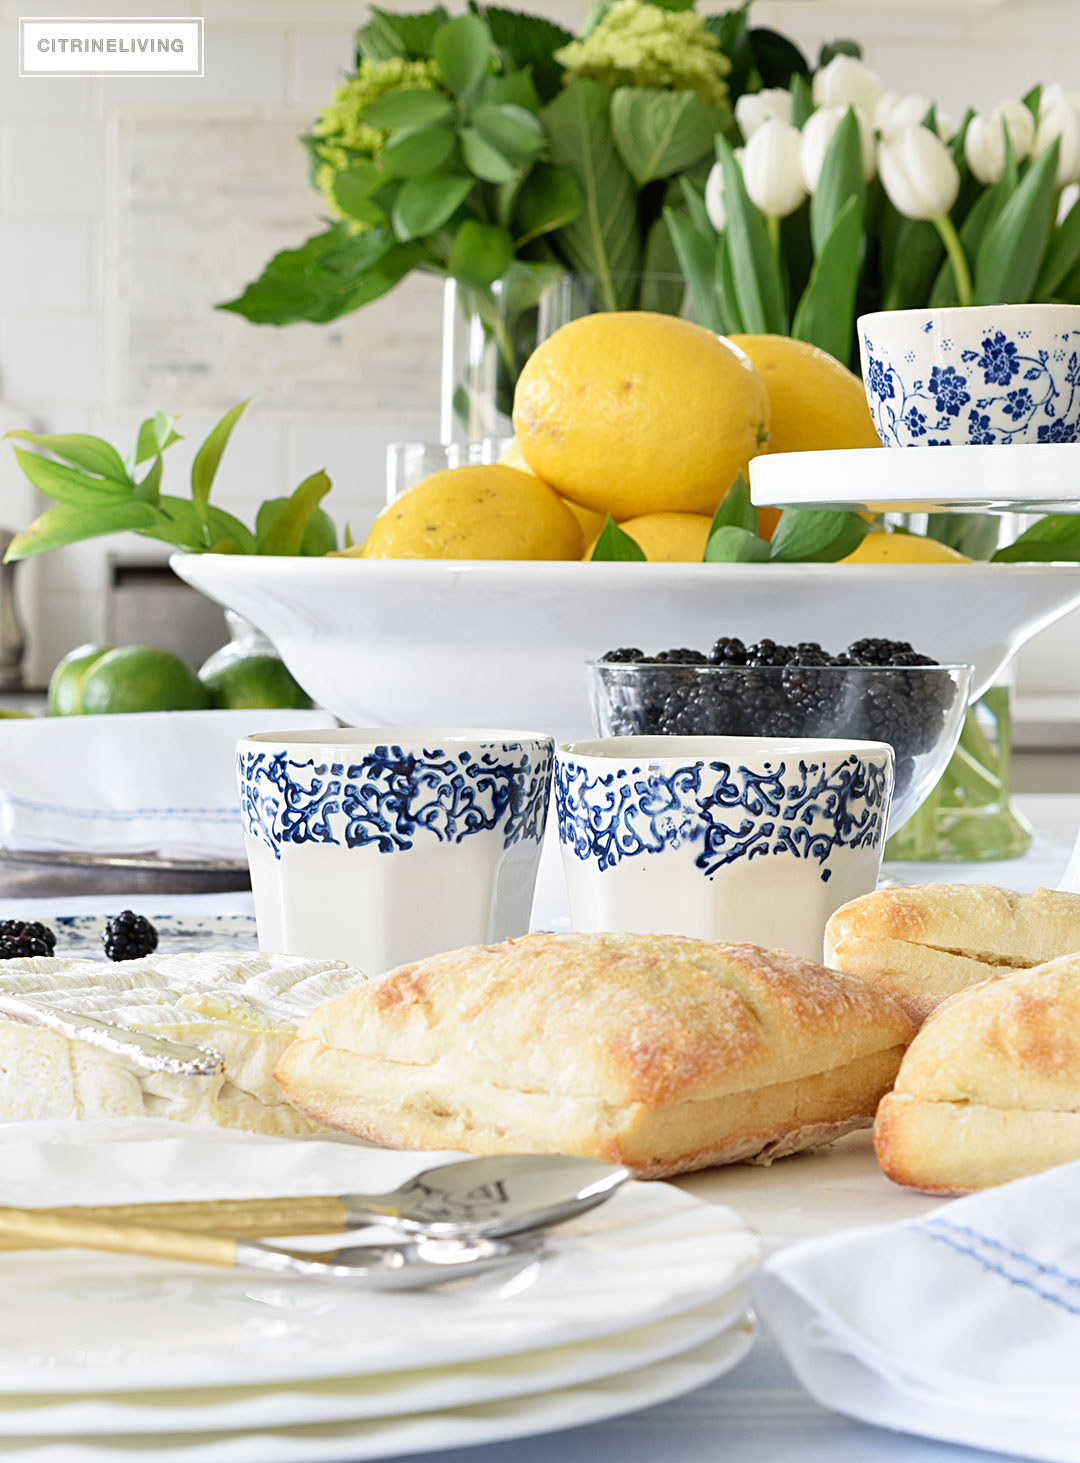 Create a welcoming tablescape of blue and white accented with fresh flowers, lemons and limes.